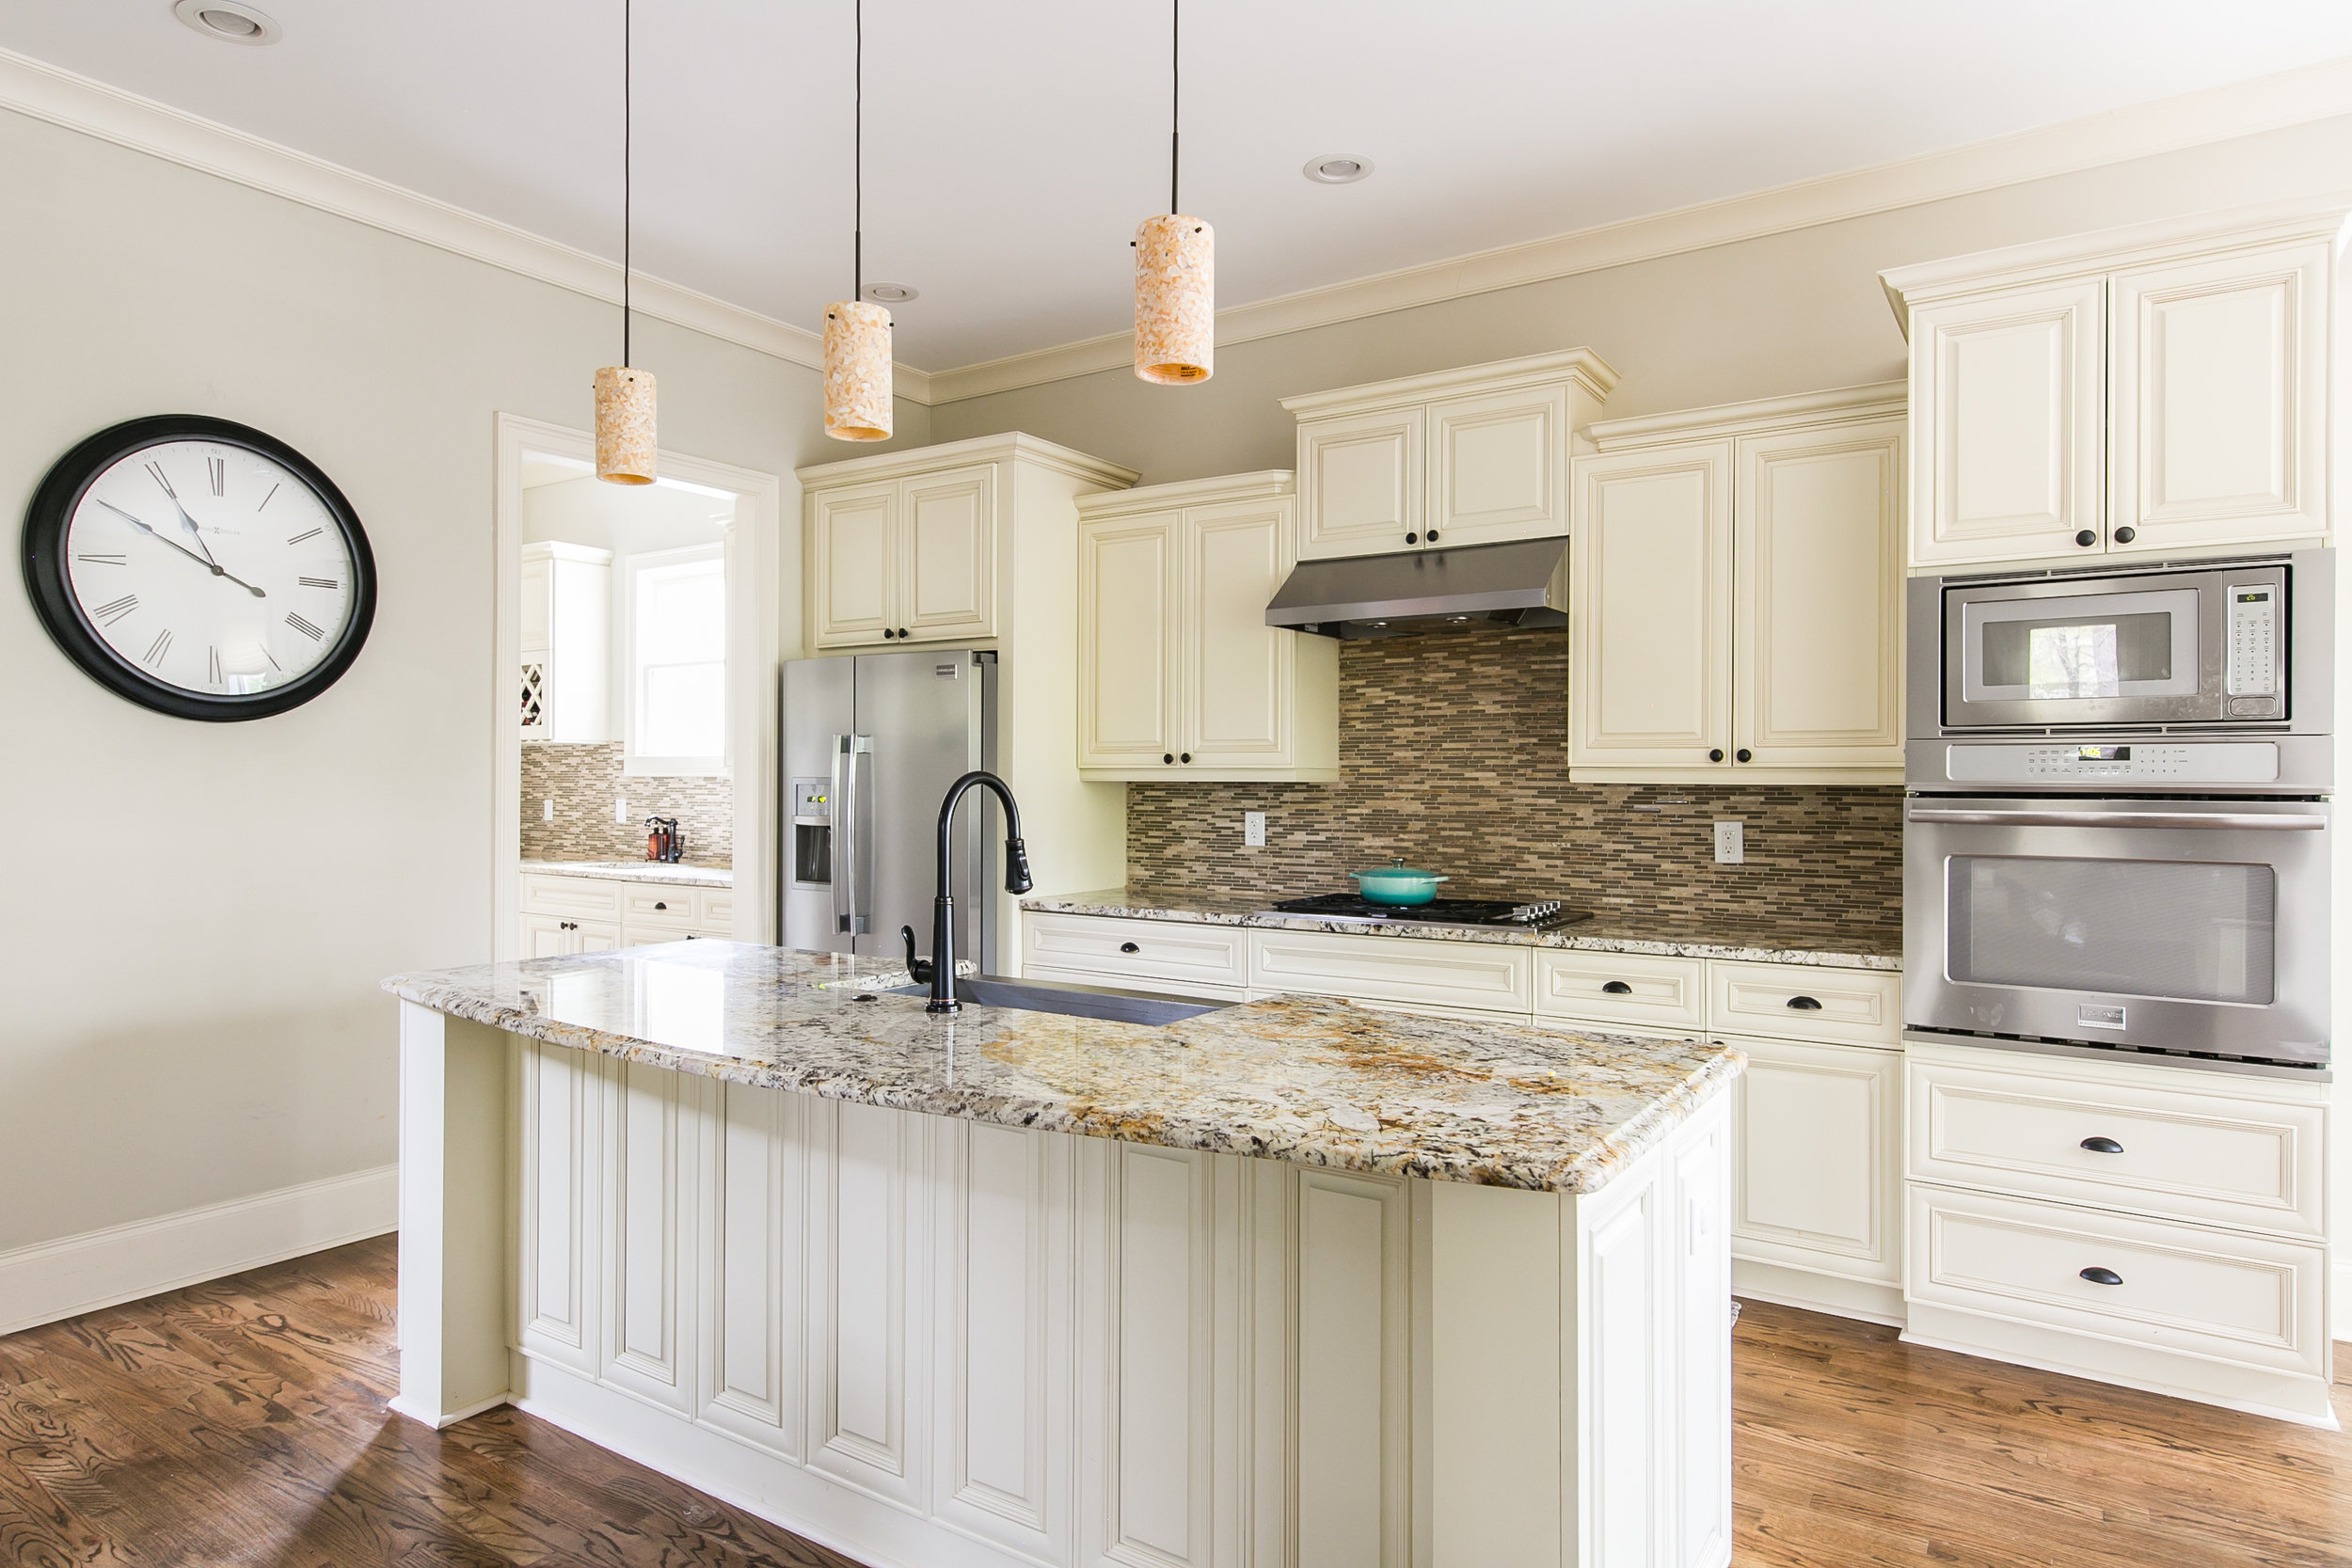 125 Mcclean-Kitchen 1.jpg